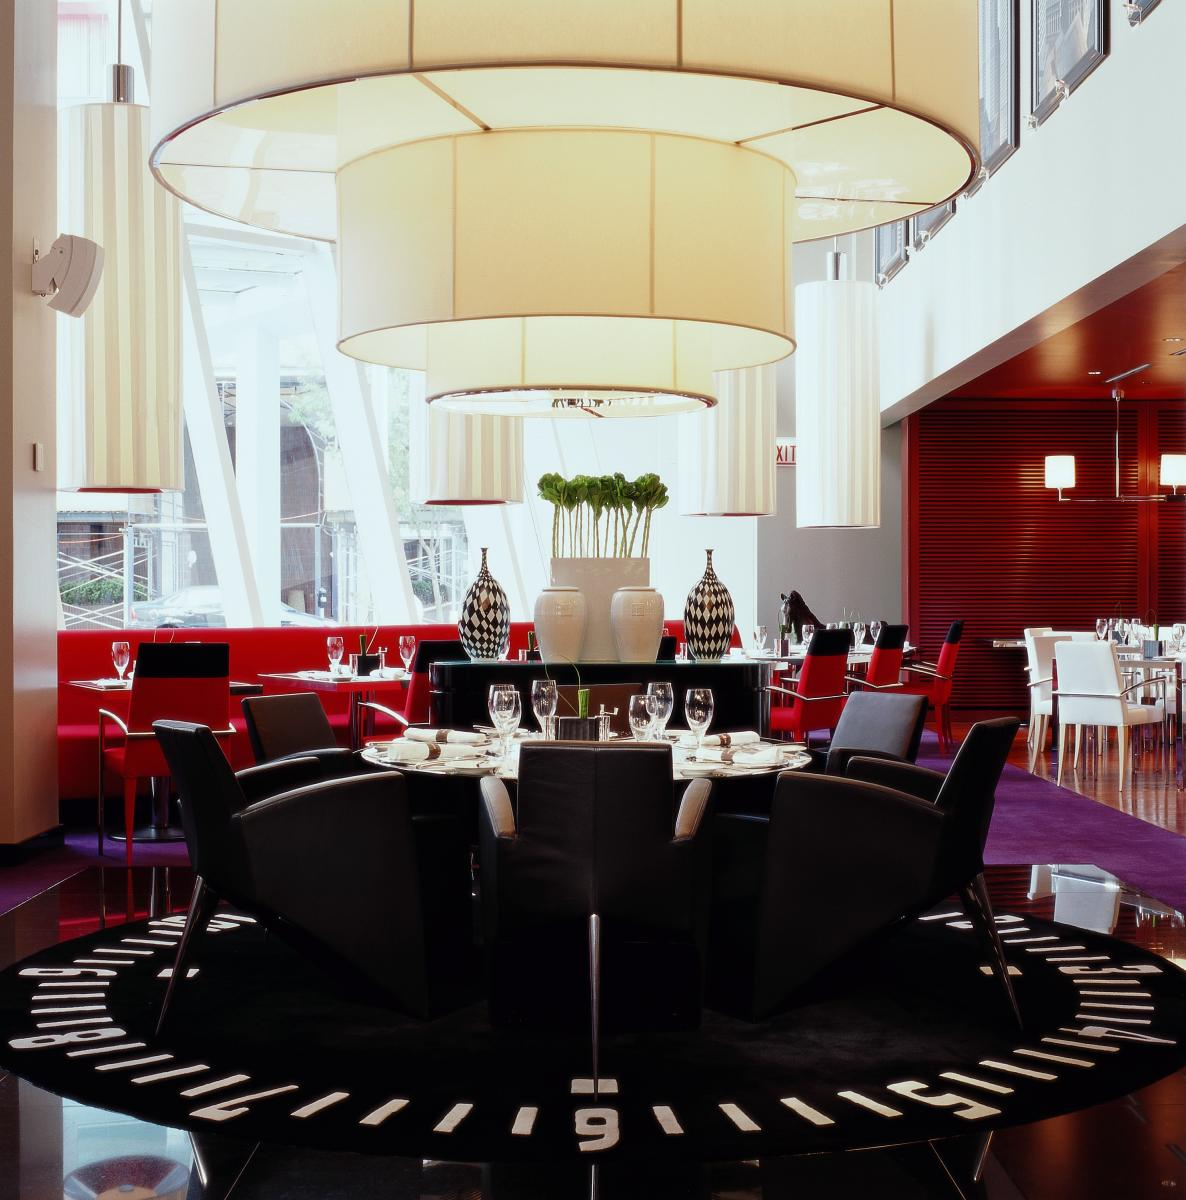 Caf 233 Des Architectes And The Cigale Private Dining Room